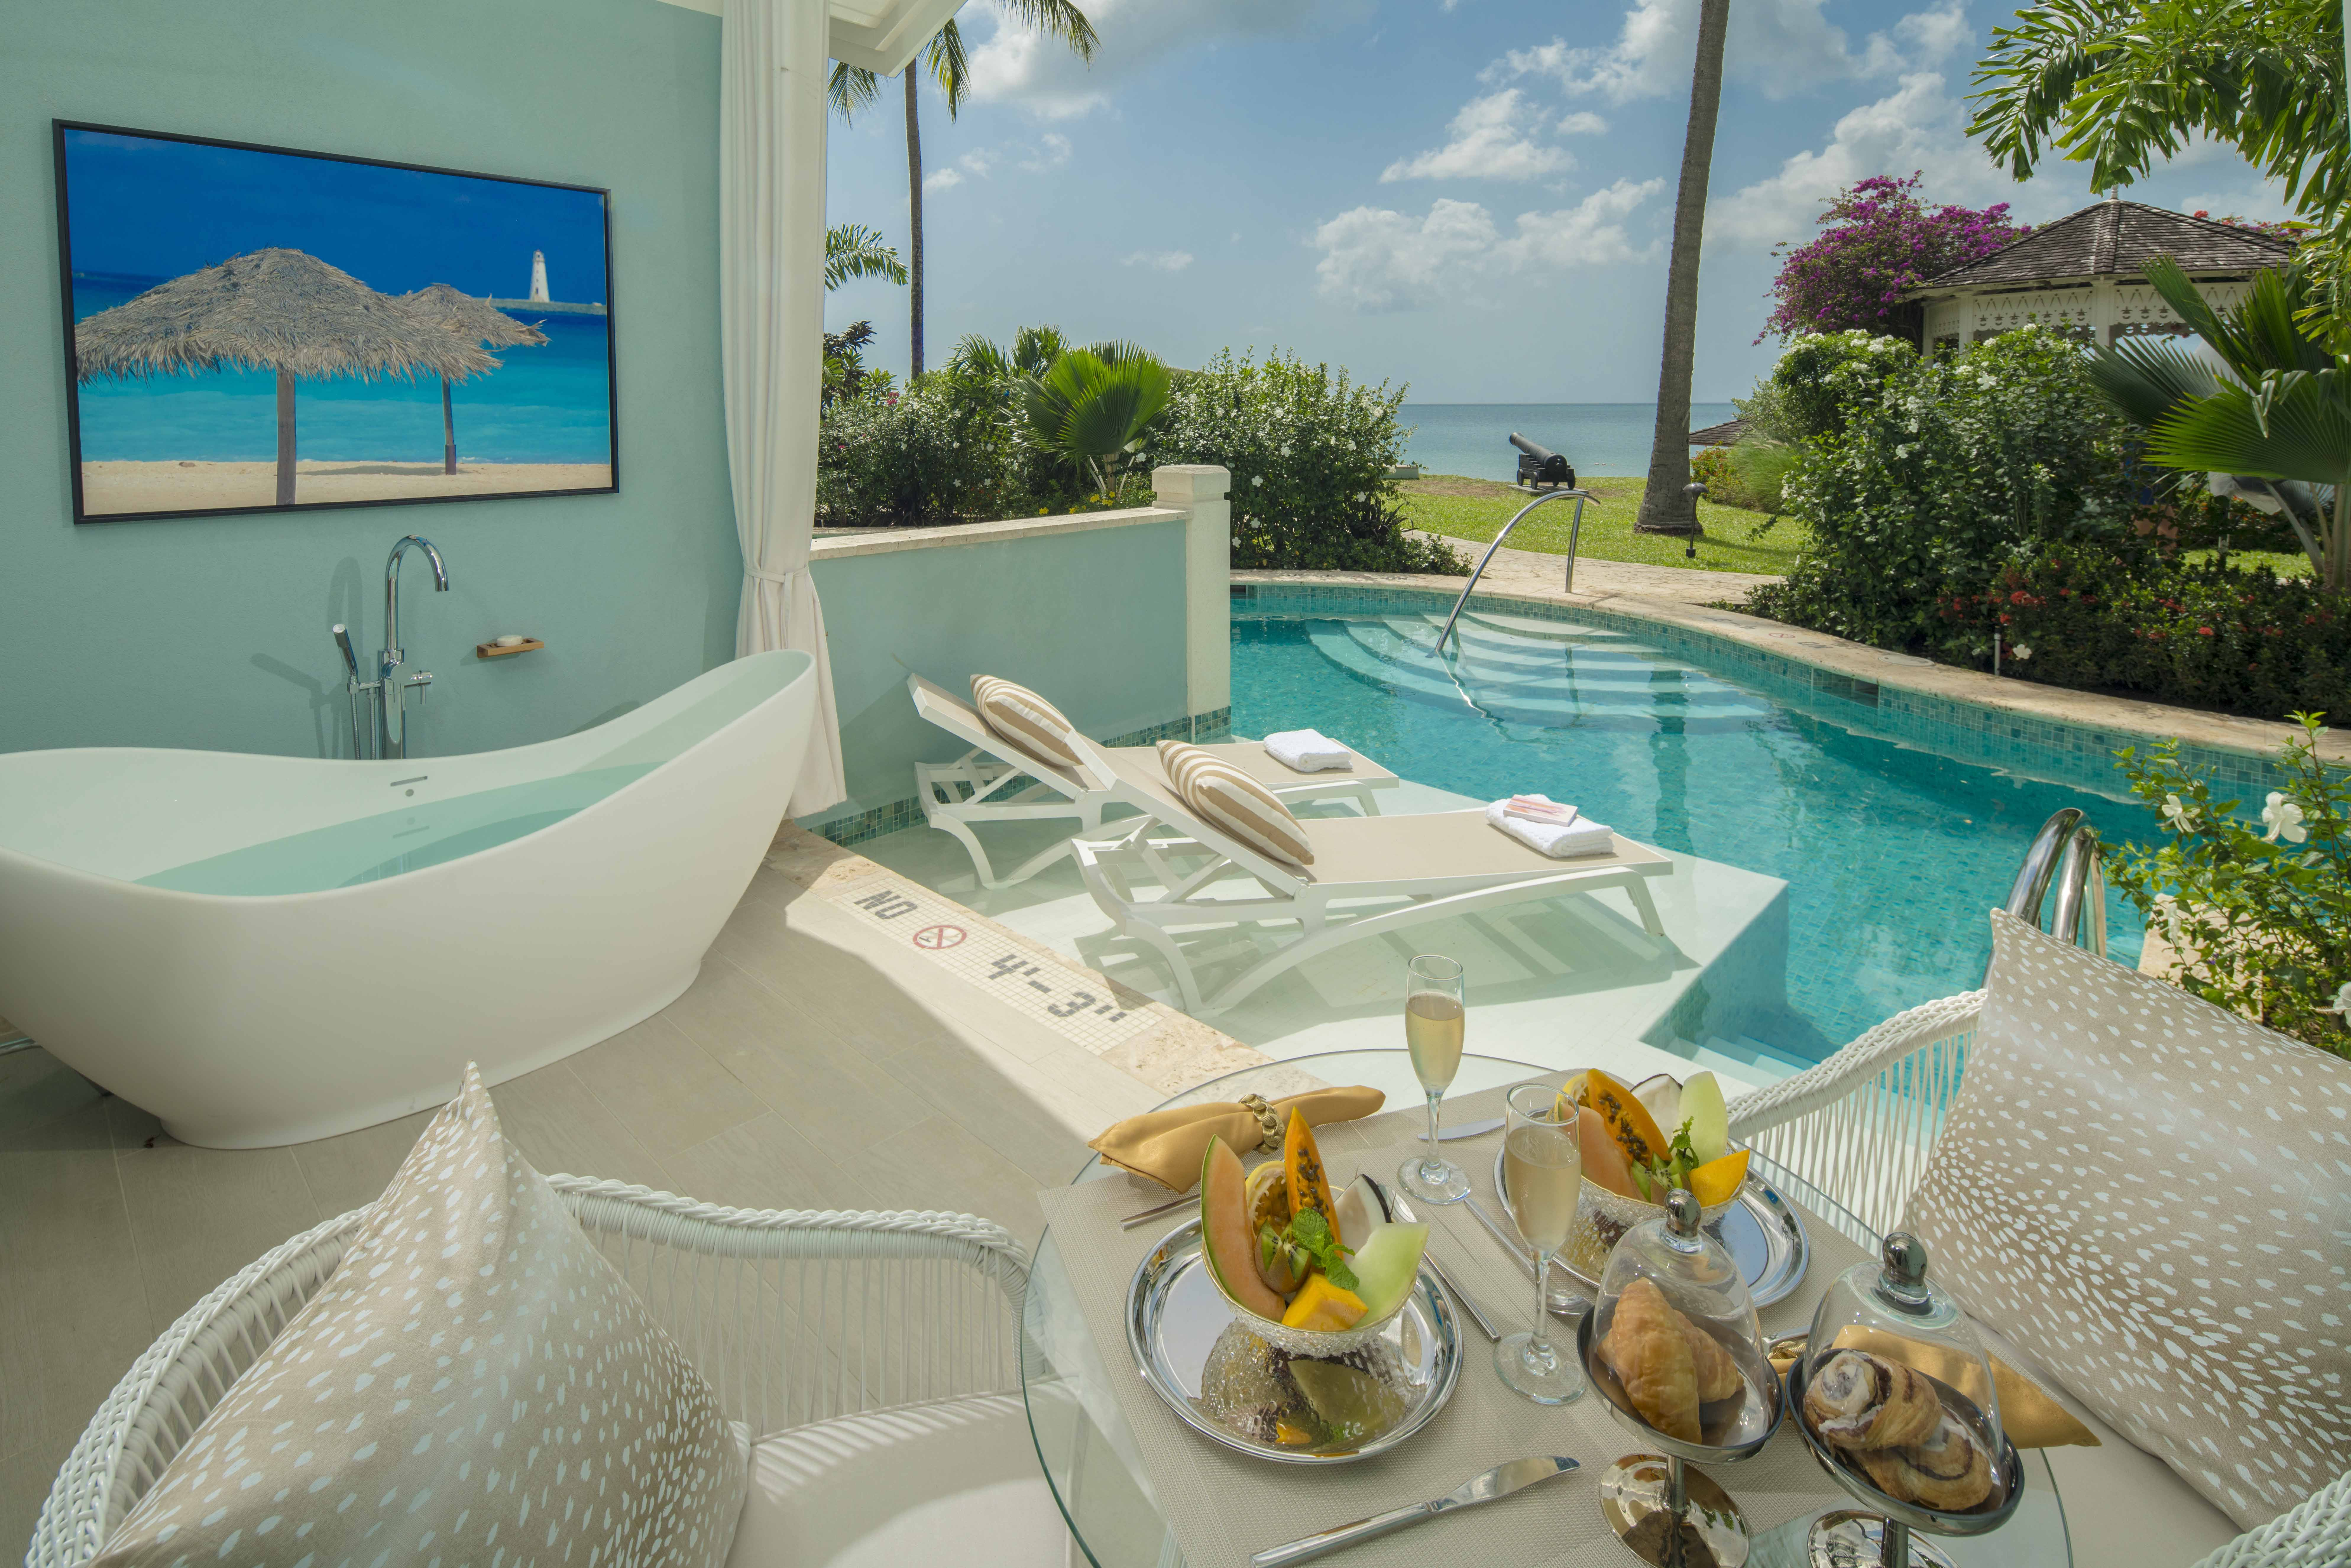 Beachfront Crystal lagoon Swim-up Butler Room w Patio Tranquility Soaking Tub at the Sandals Halcyon Beach